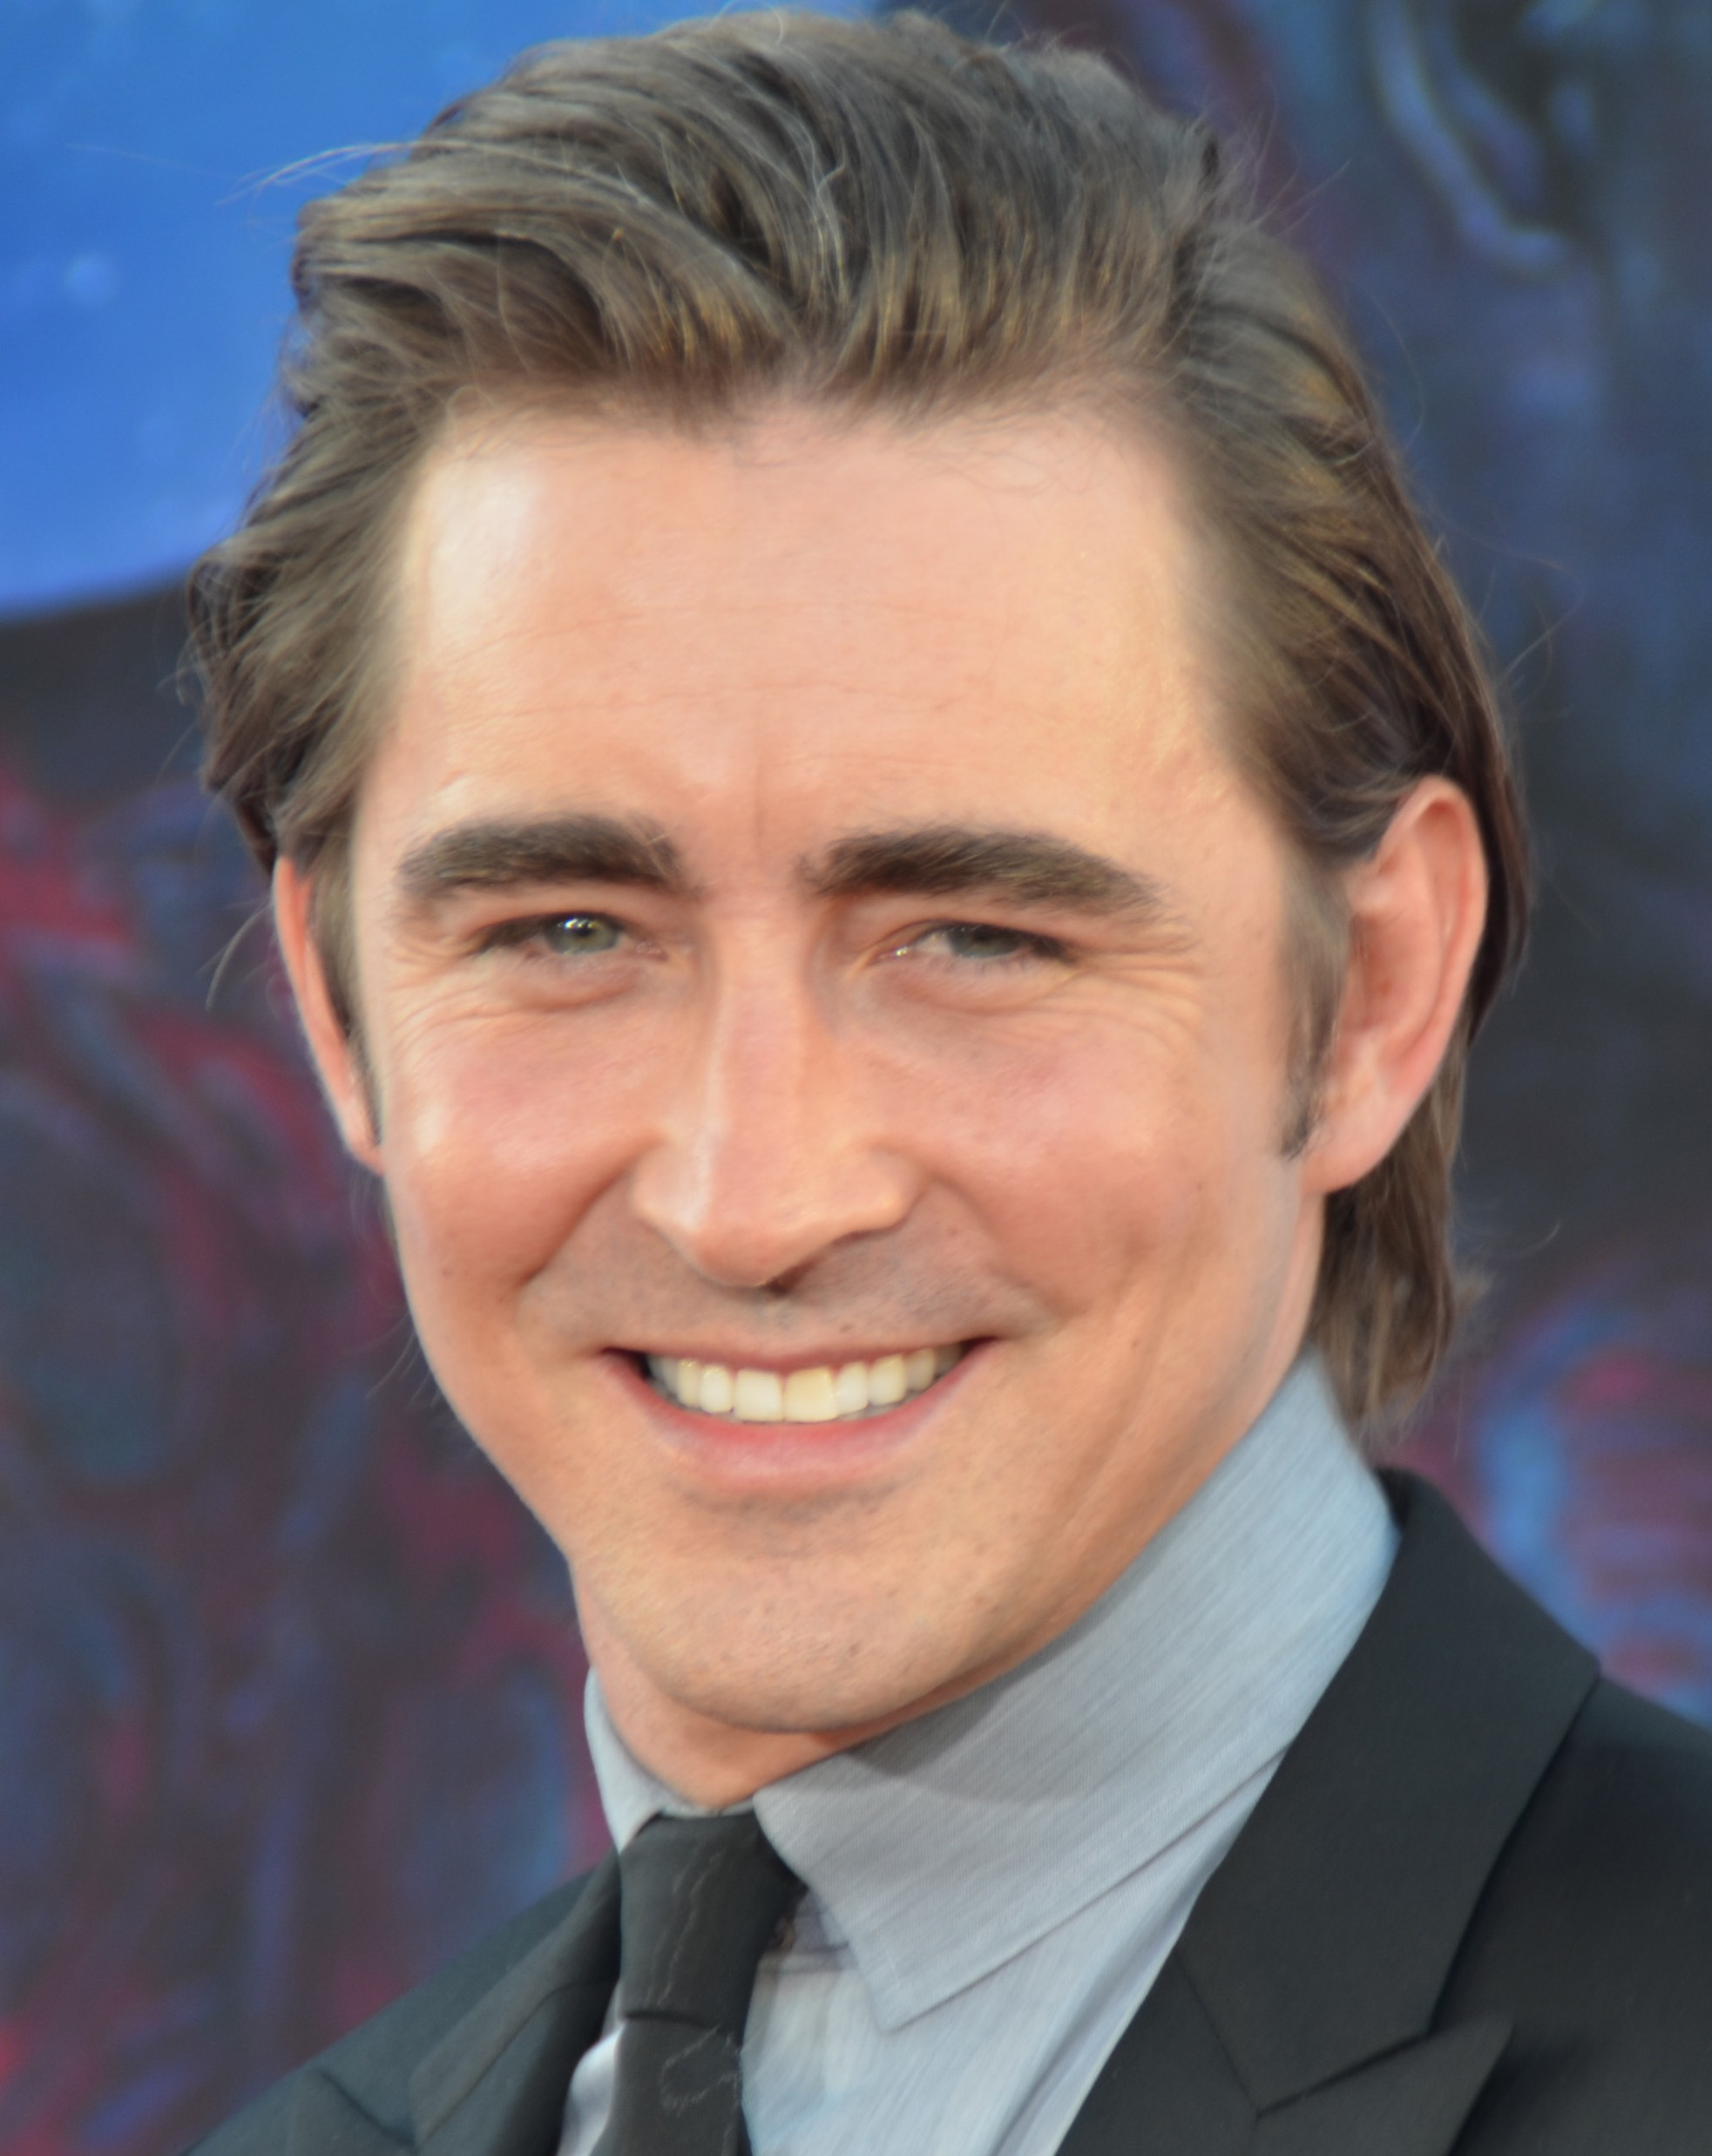 The 39-year old son of father James Roy Pace and mother Charlotte Kloeckler Pace Lee Pace in 2018 photo. Lee Pace earned a  million dollar salary - leaving the net worth at 5 million in 2018